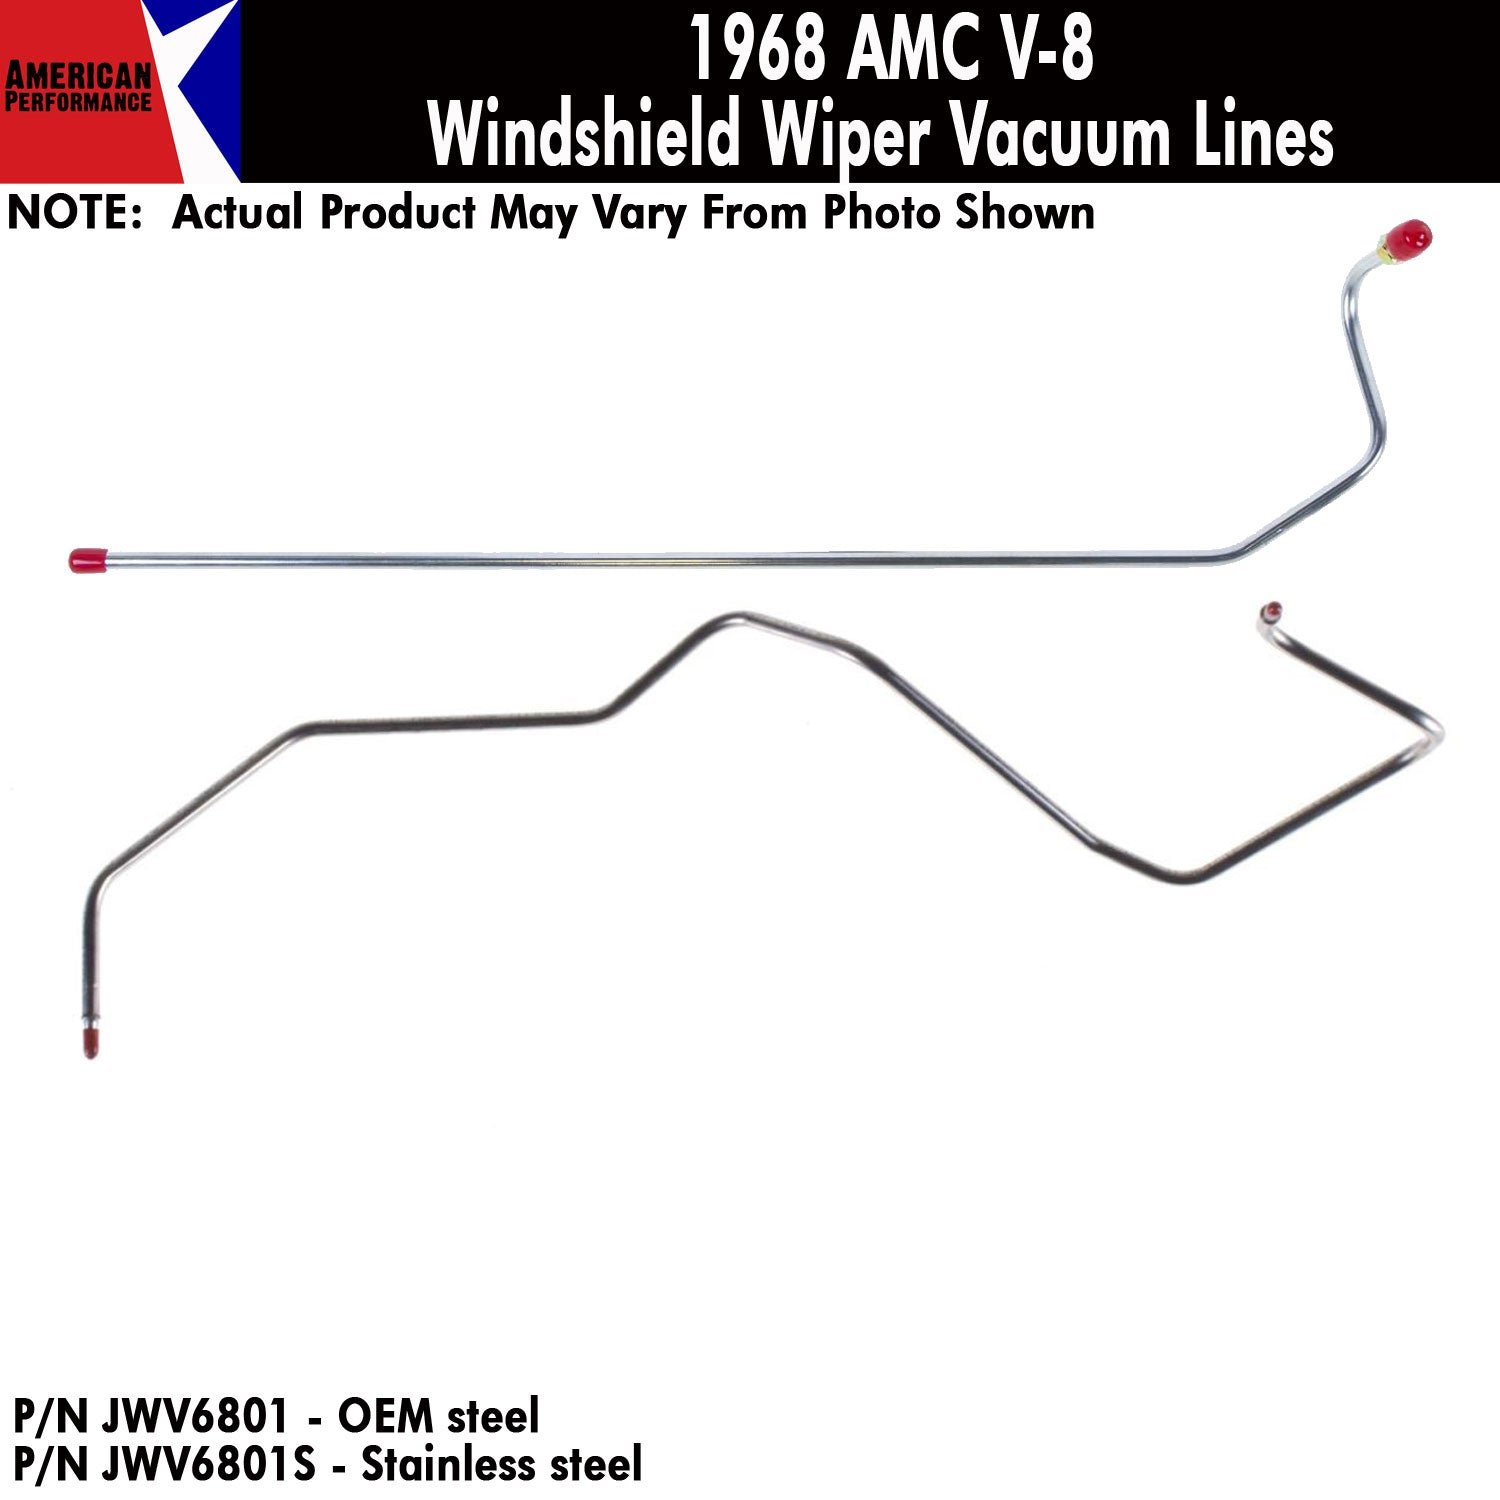 1968 AMC V-8 Windshield Wiper Vacuum Line 2-Piece Kit (2